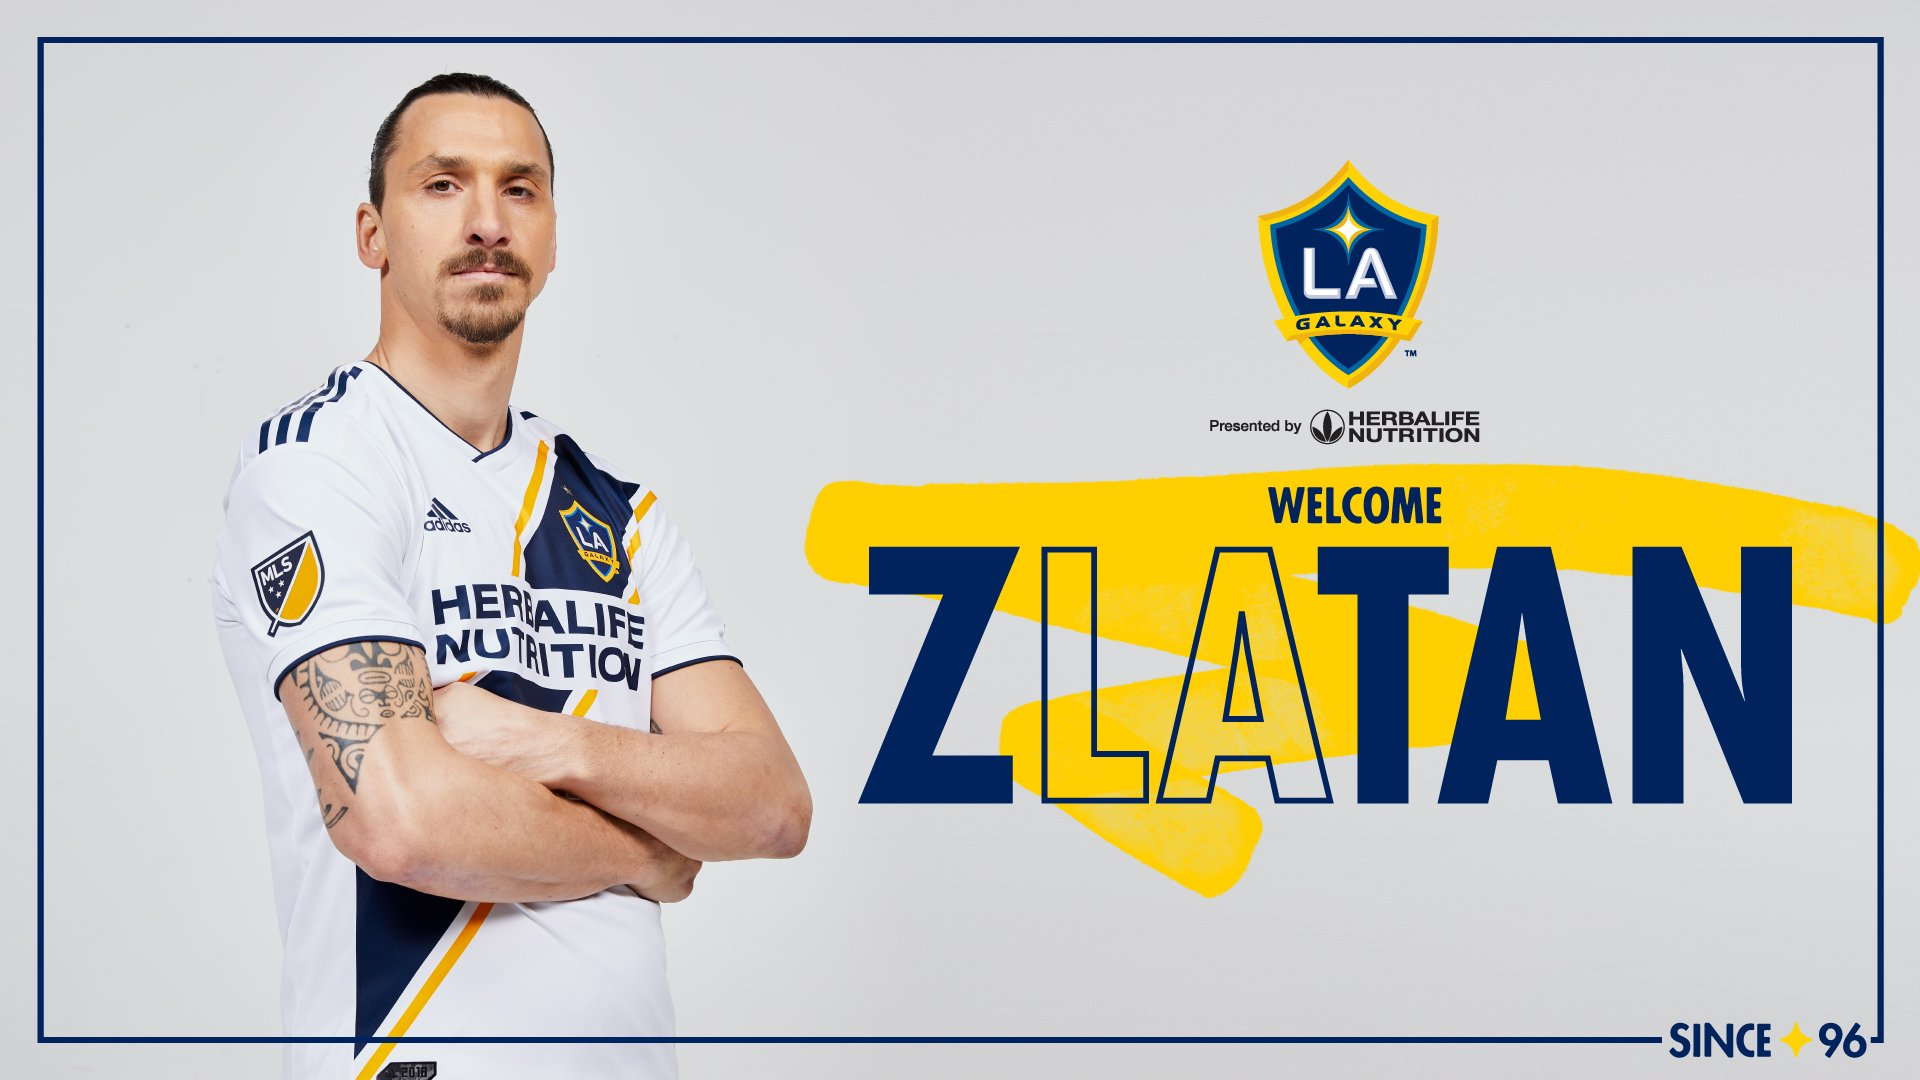 LA Galaxy Confirm Ibrahimovic Signing, Swedish Star Excited